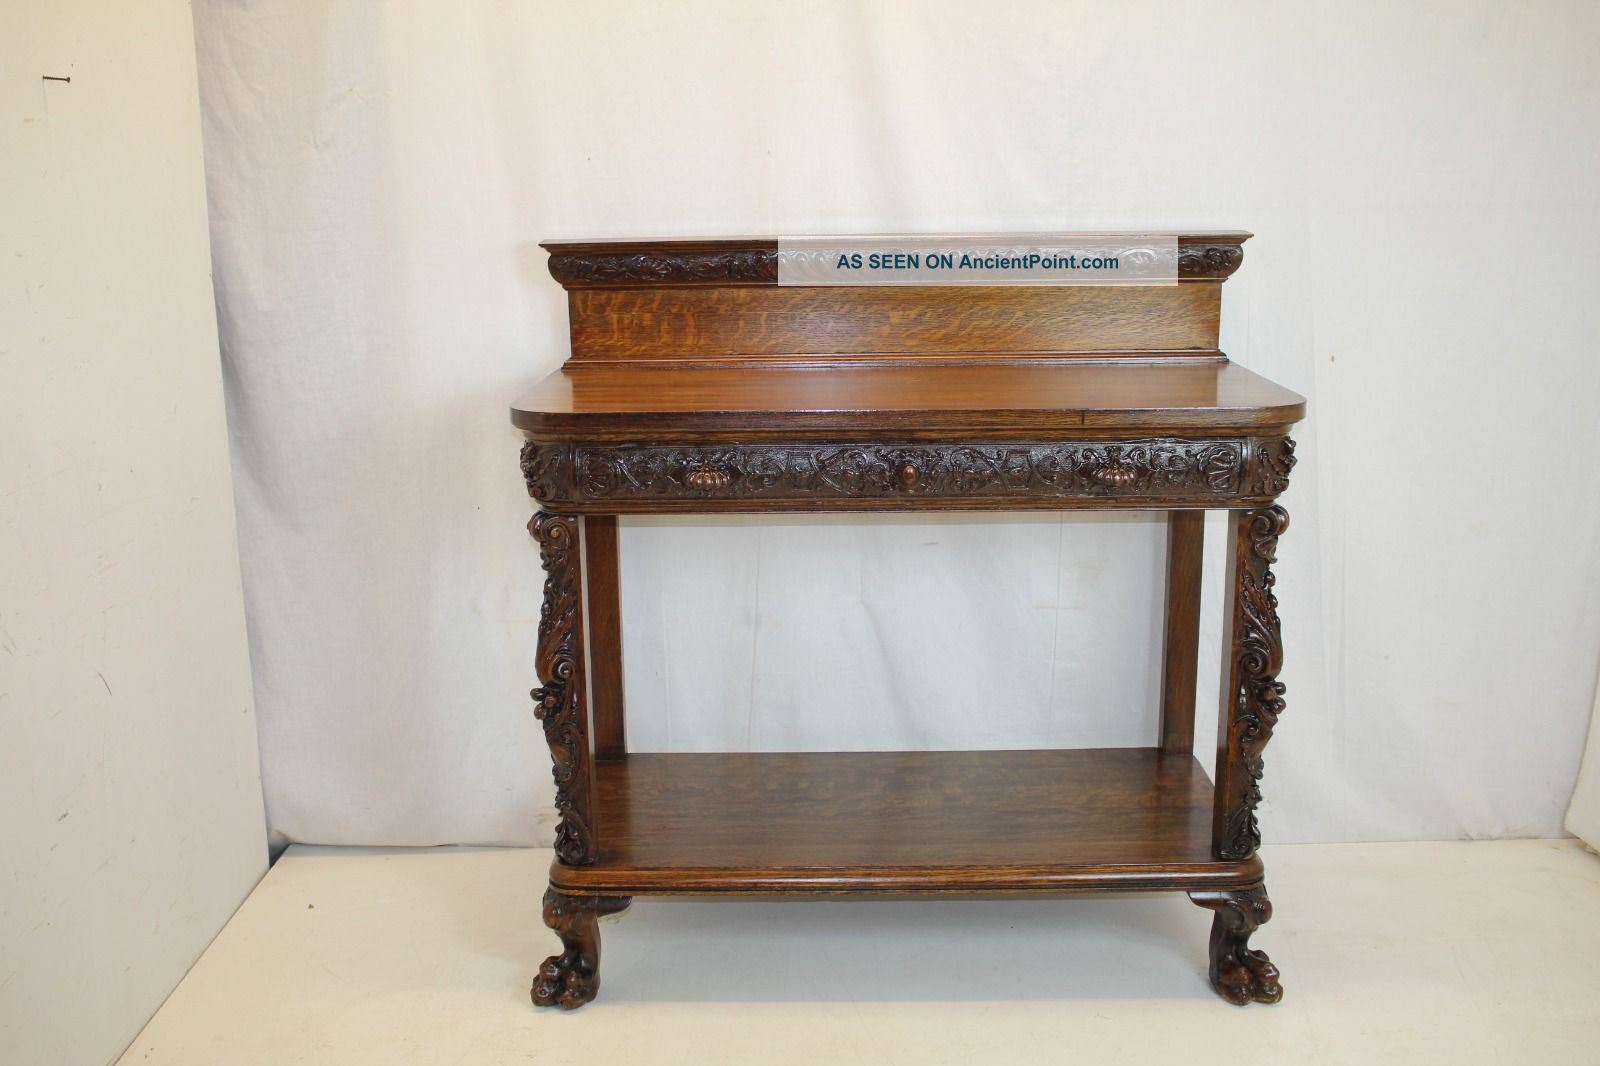 American Console Server Dump Waiter Buffet Sideborad Table With Full Drawer 19th 1800-1899 photo